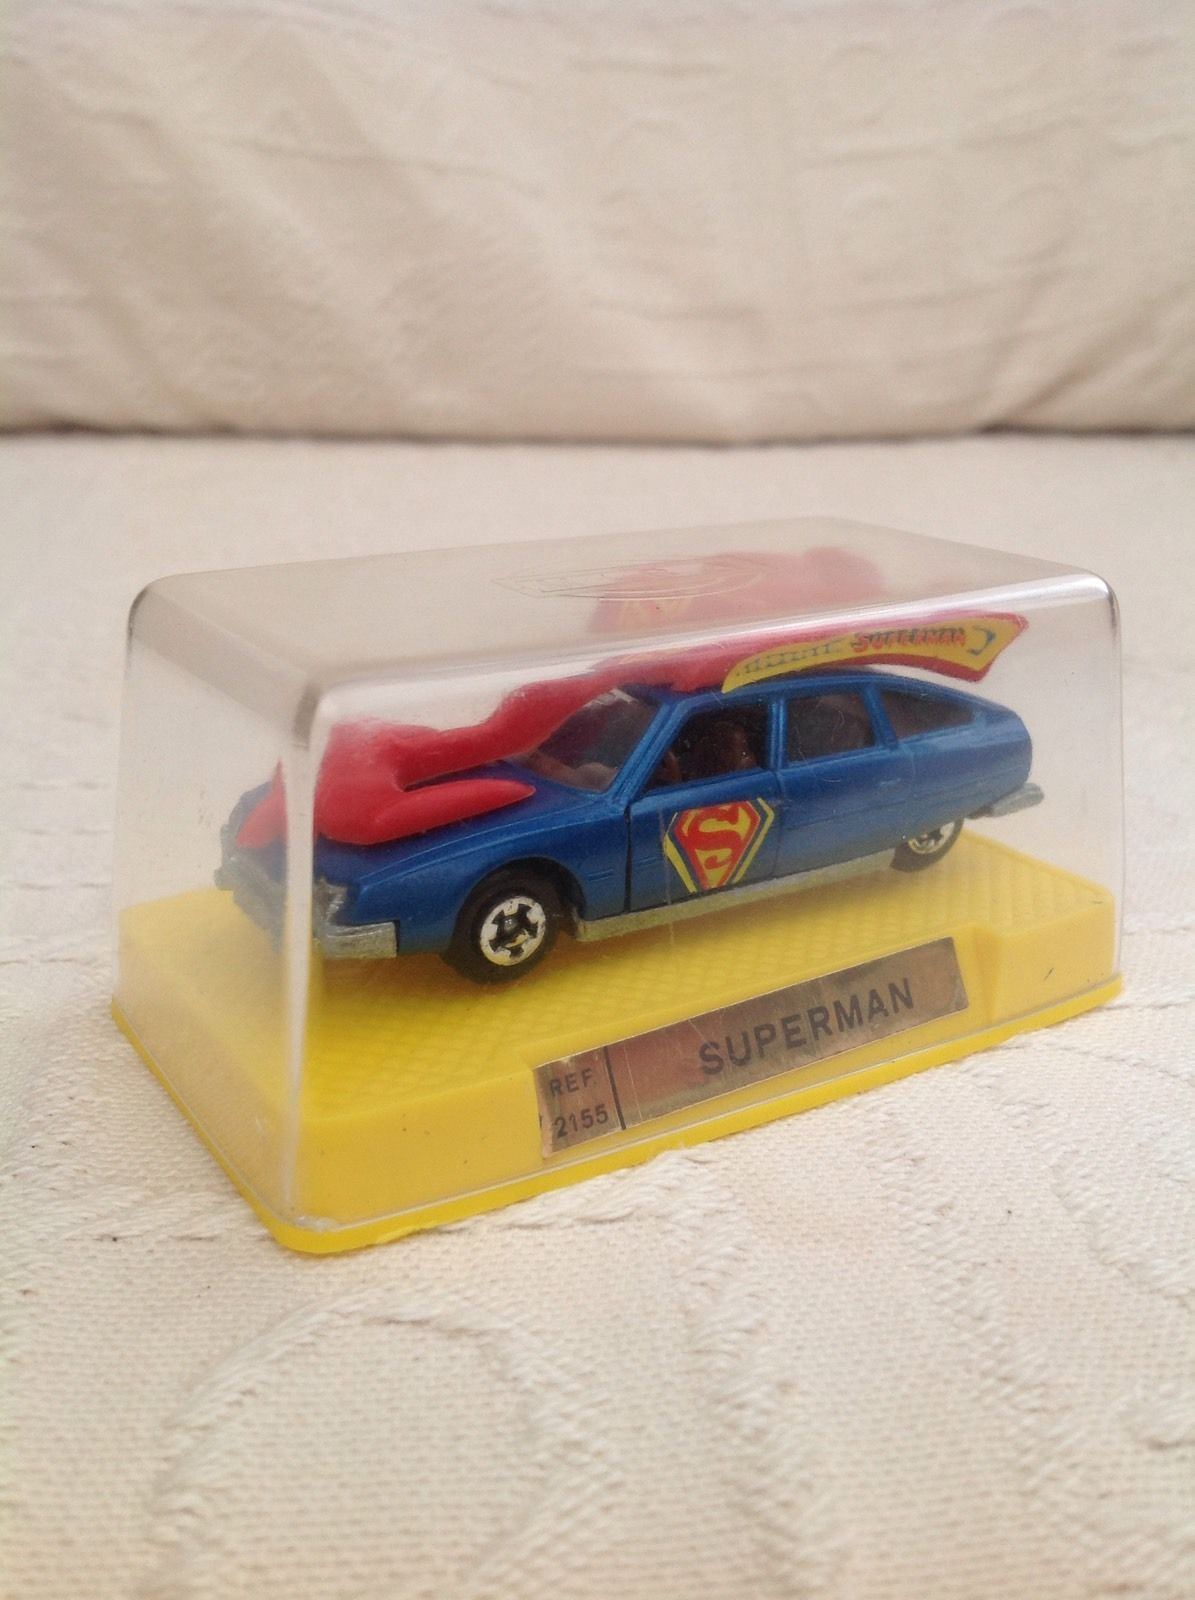 Cx citroën Superman Mira 1975